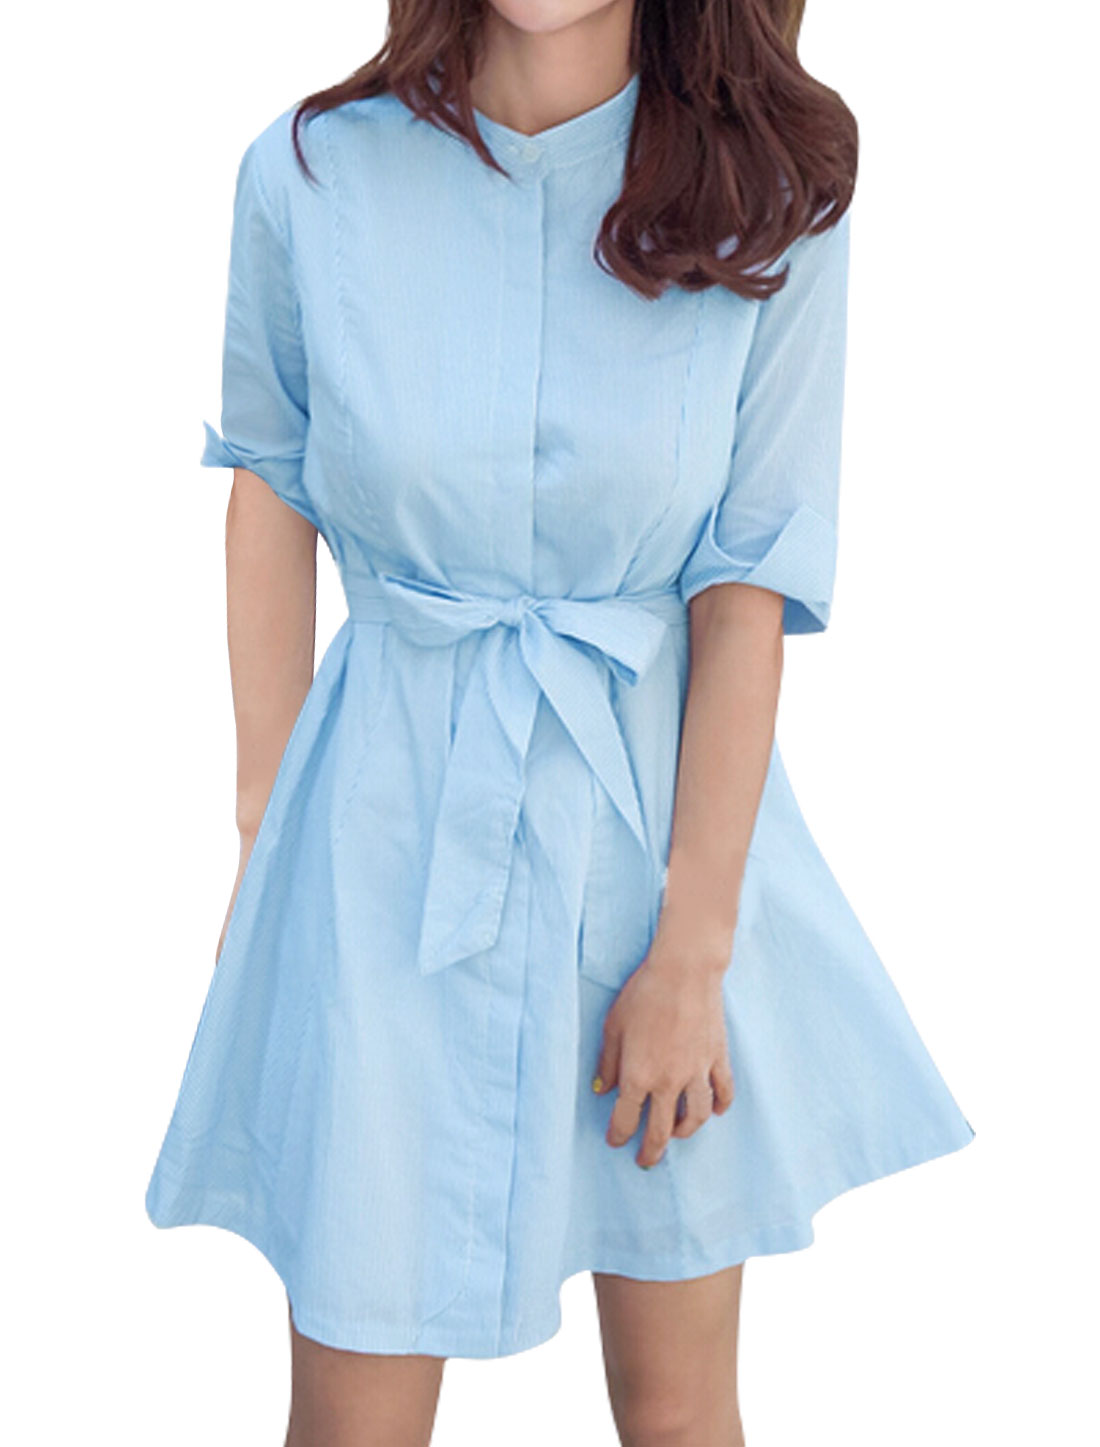 Woman Collared 1/2 Sleeves Stripes Shirt Dress w Waist String Blue XS